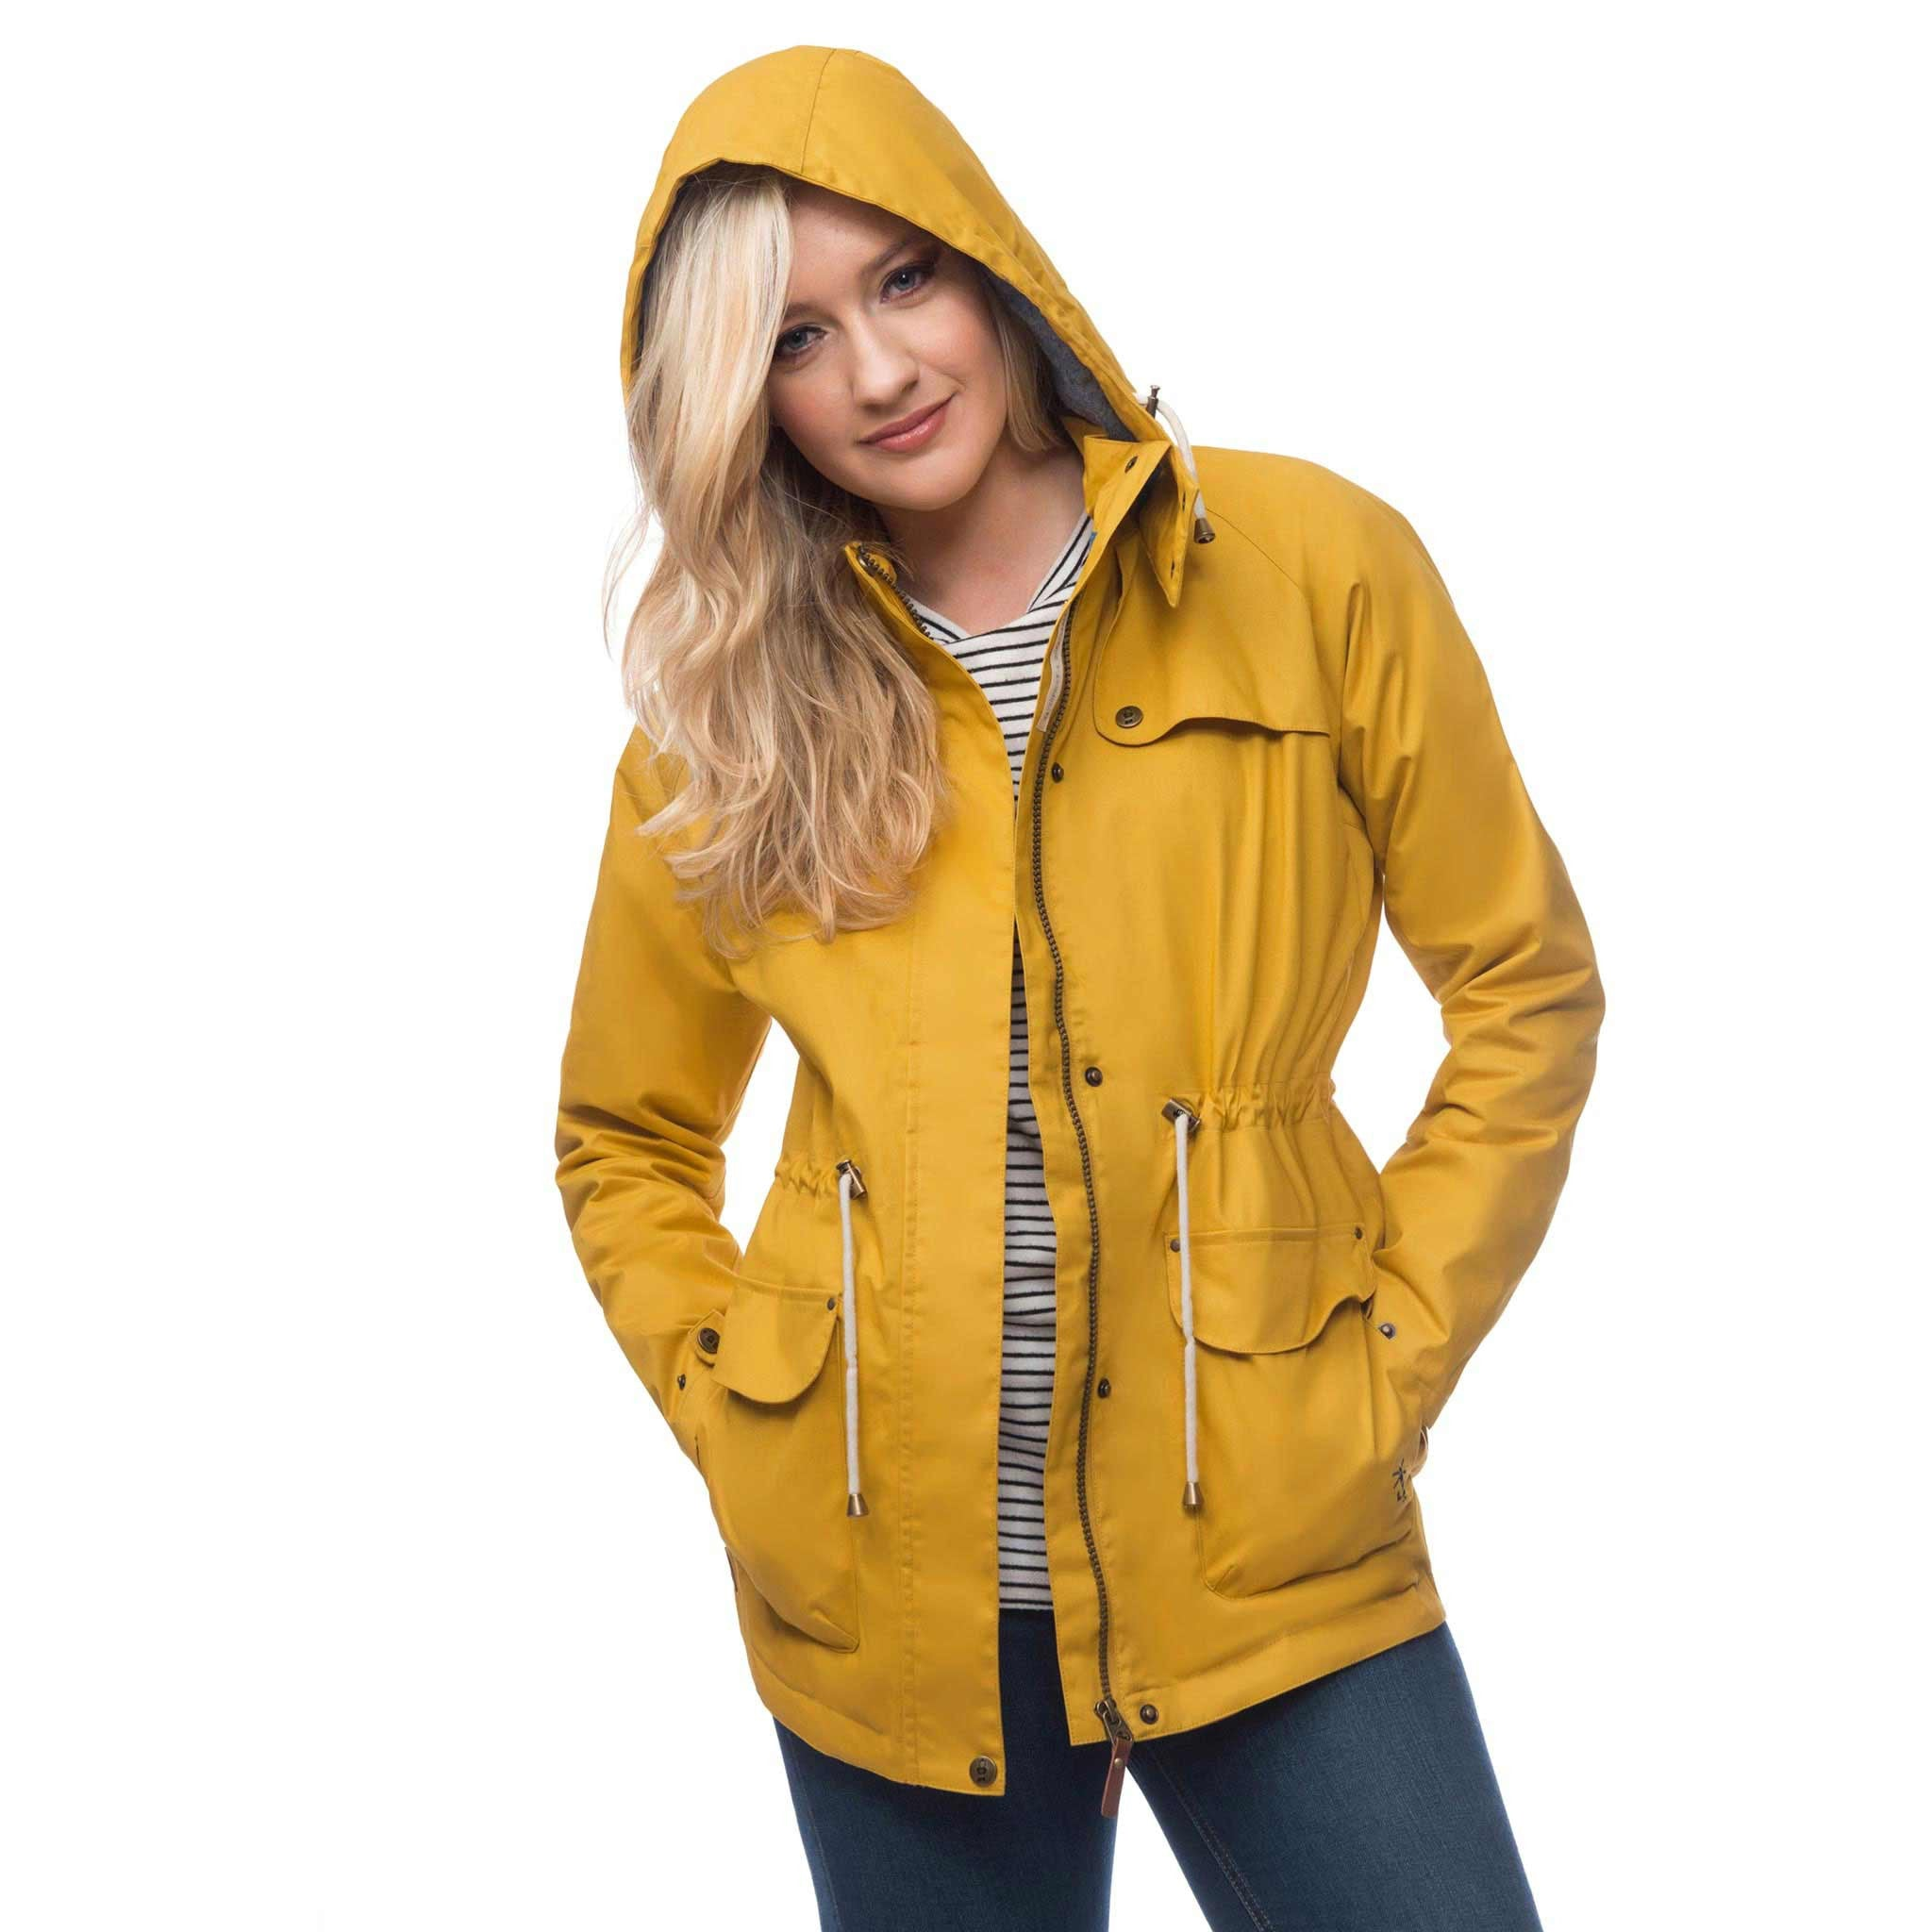 Lighthouse Womens Lana Waterproof Hooded Raincoat in Yellow. Coat unzipped.